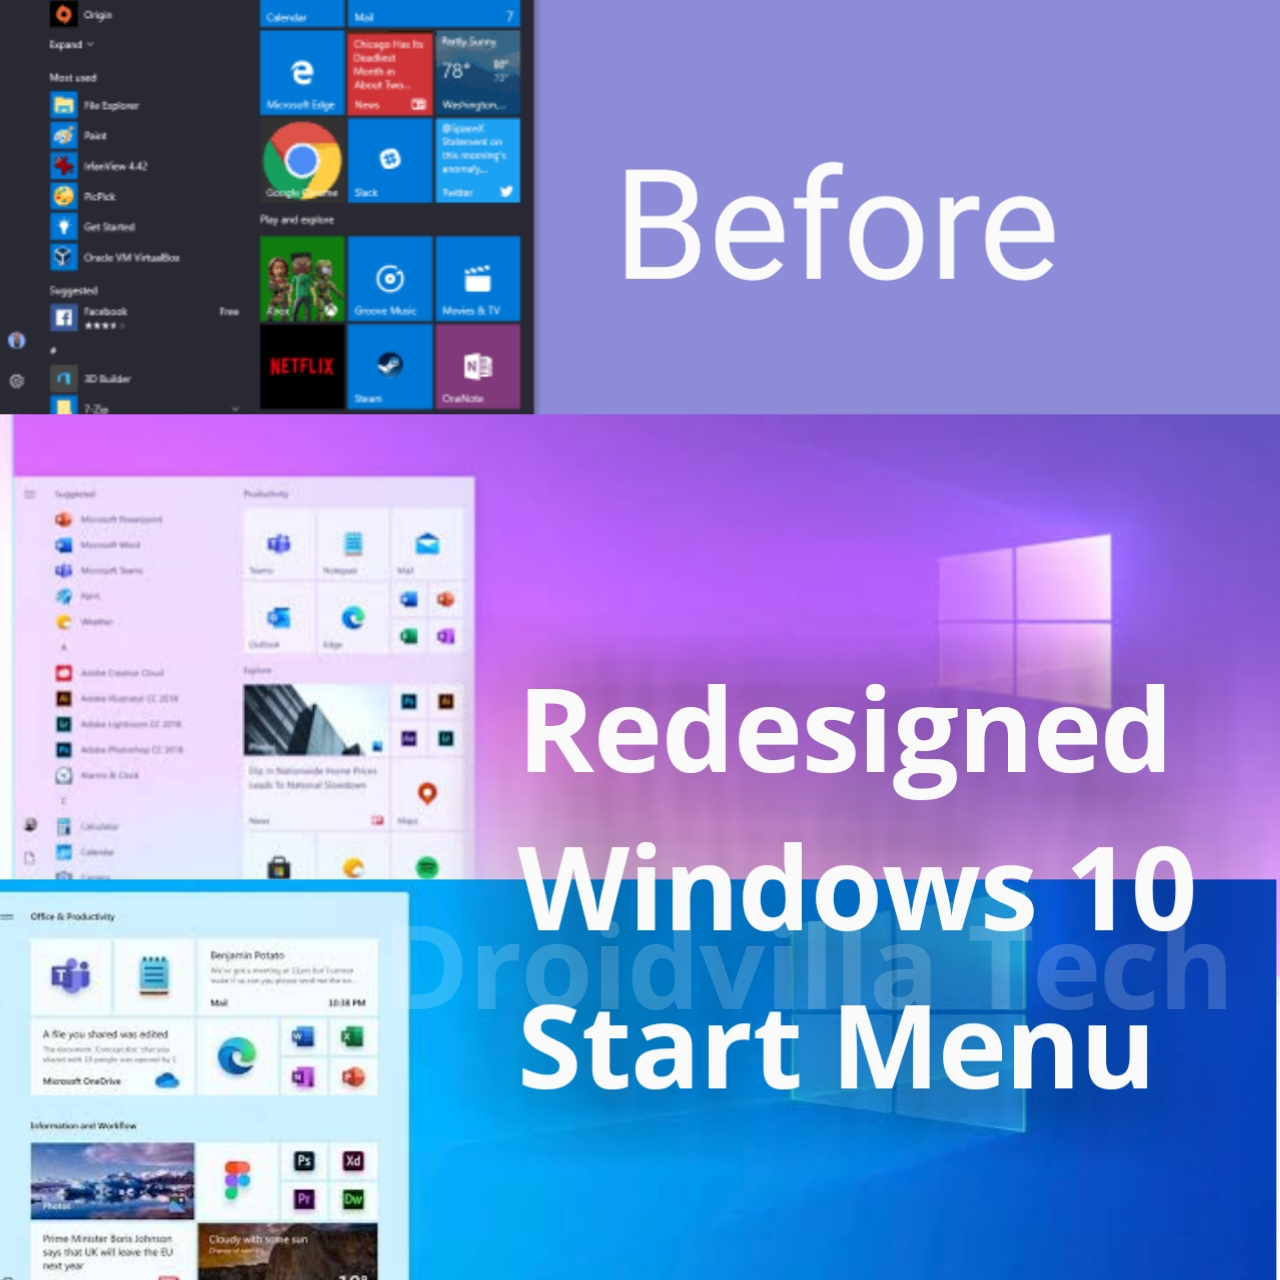 Redesigned Windows 10 Start Menu